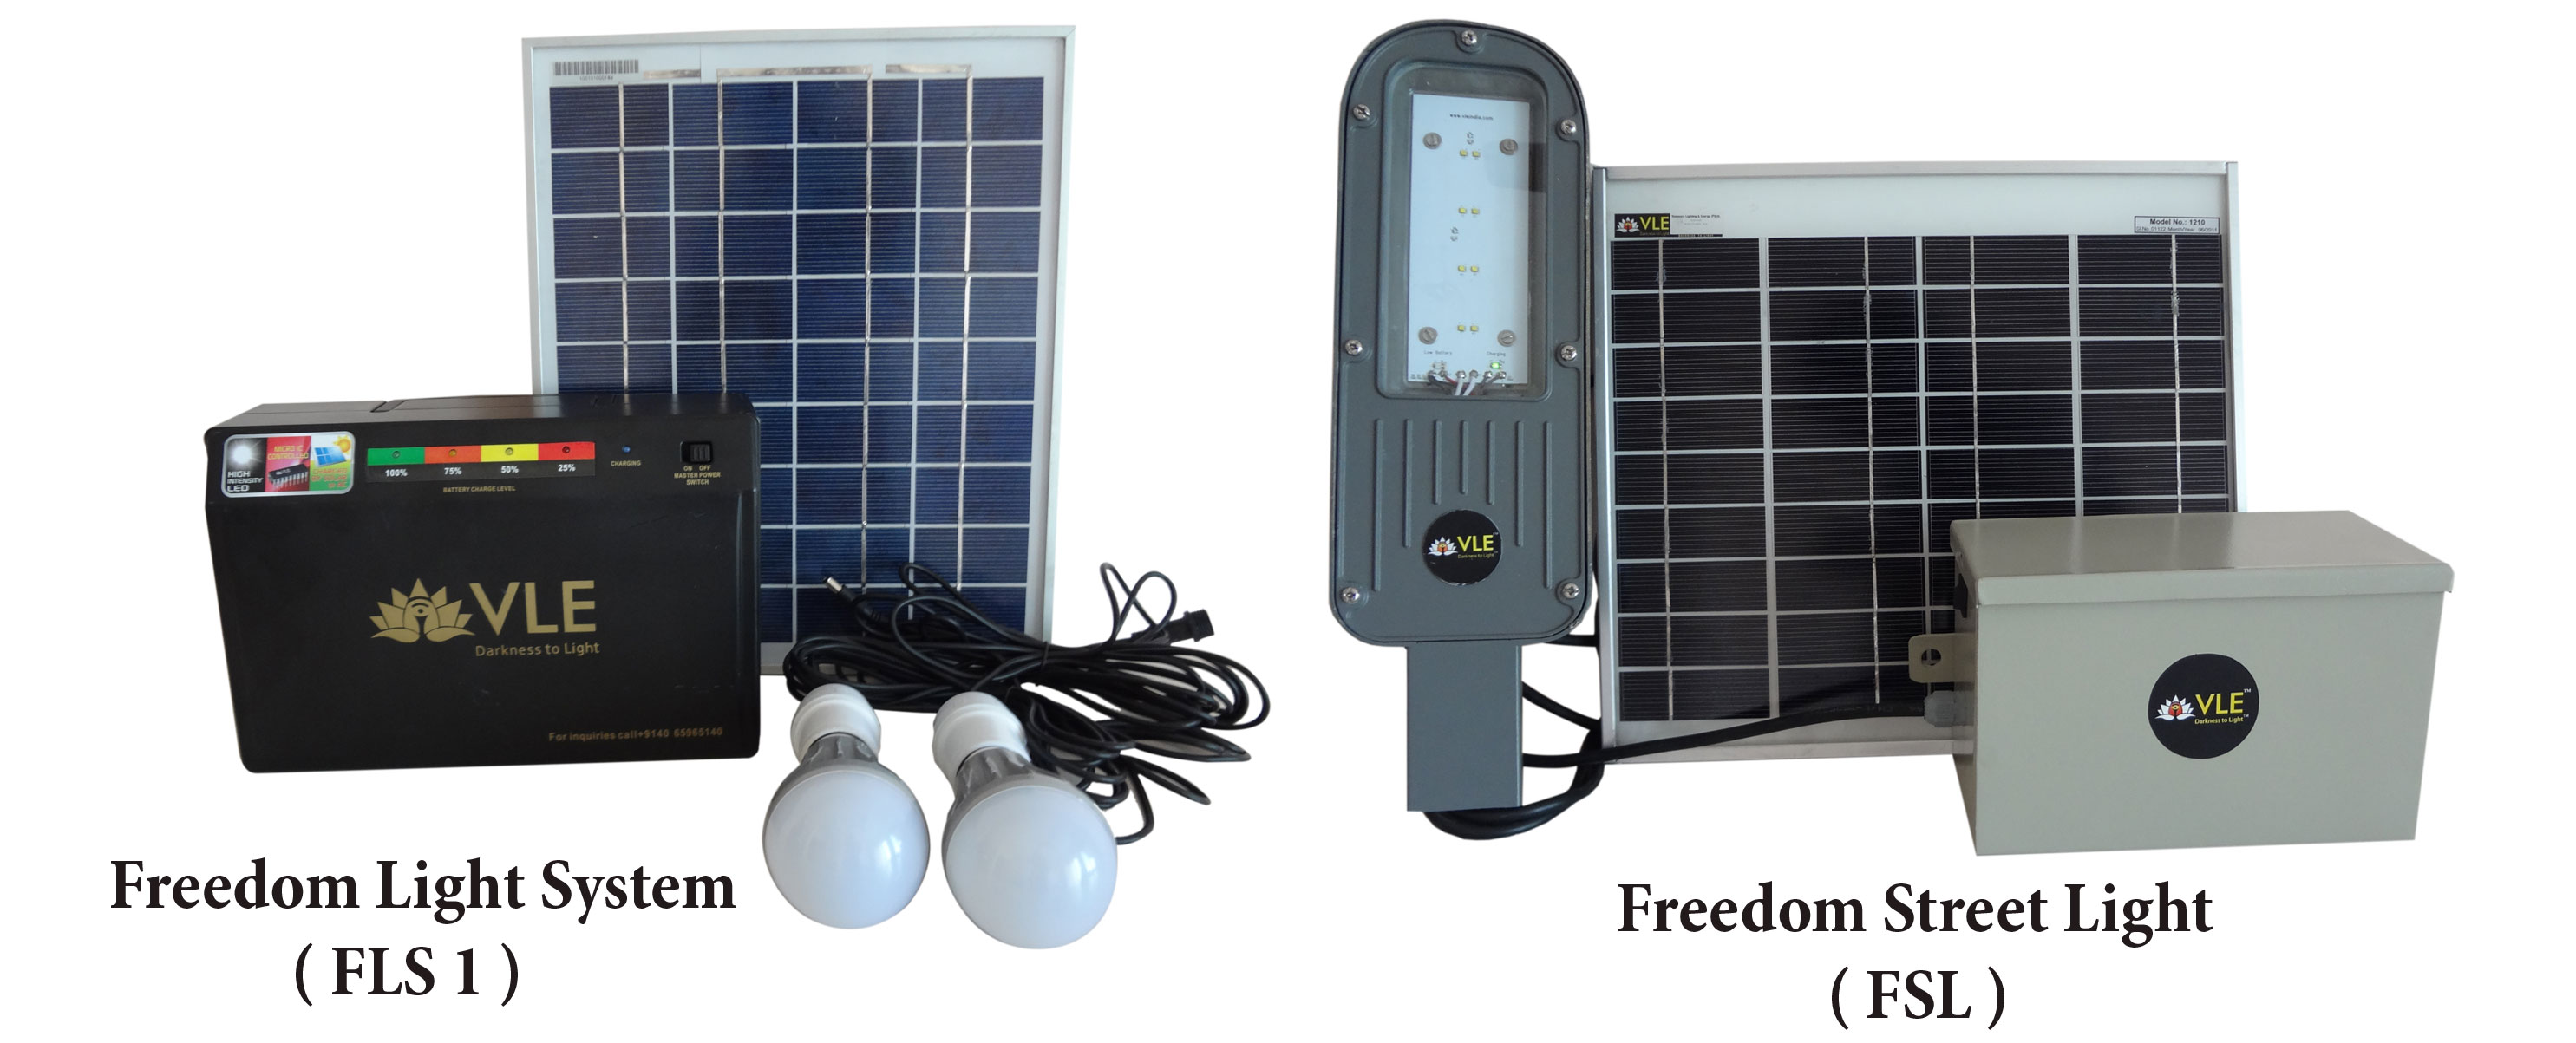 VLEINDIA Freedom Light System and Street Light